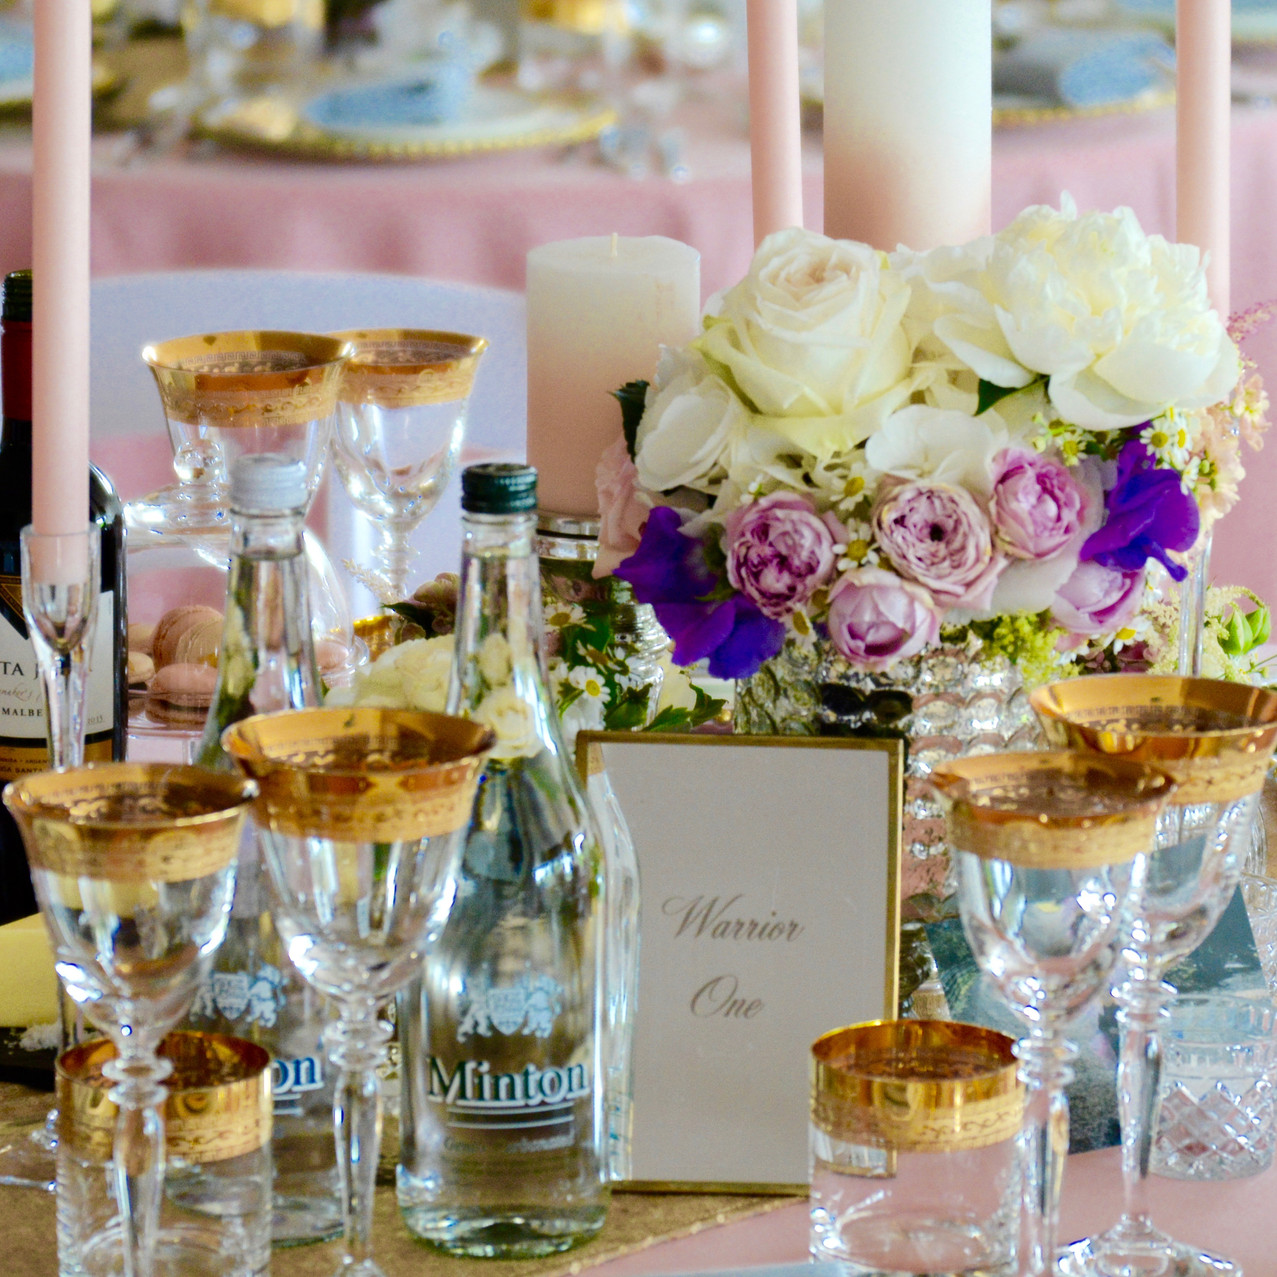 Eight of the 15 guest tables were decorated with low level vases, decorated with a mercury effect design and complete with coordinating flowers and foliage.